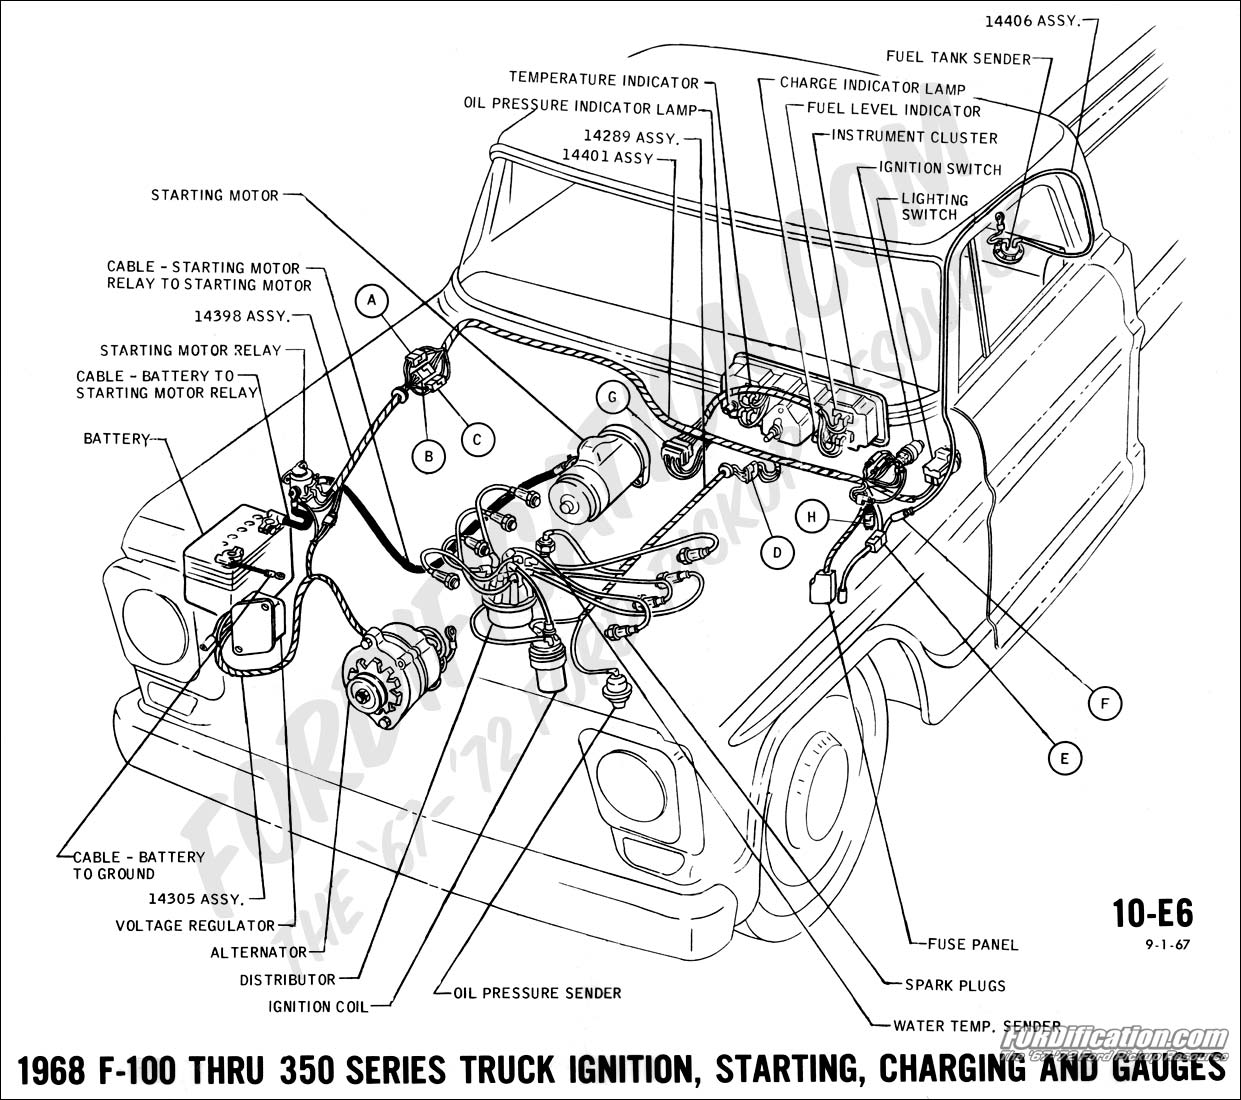 68 08 ford truck technical drawings and schematics section h wiring 81 Dodge Alternator Diagram at creativeand.co